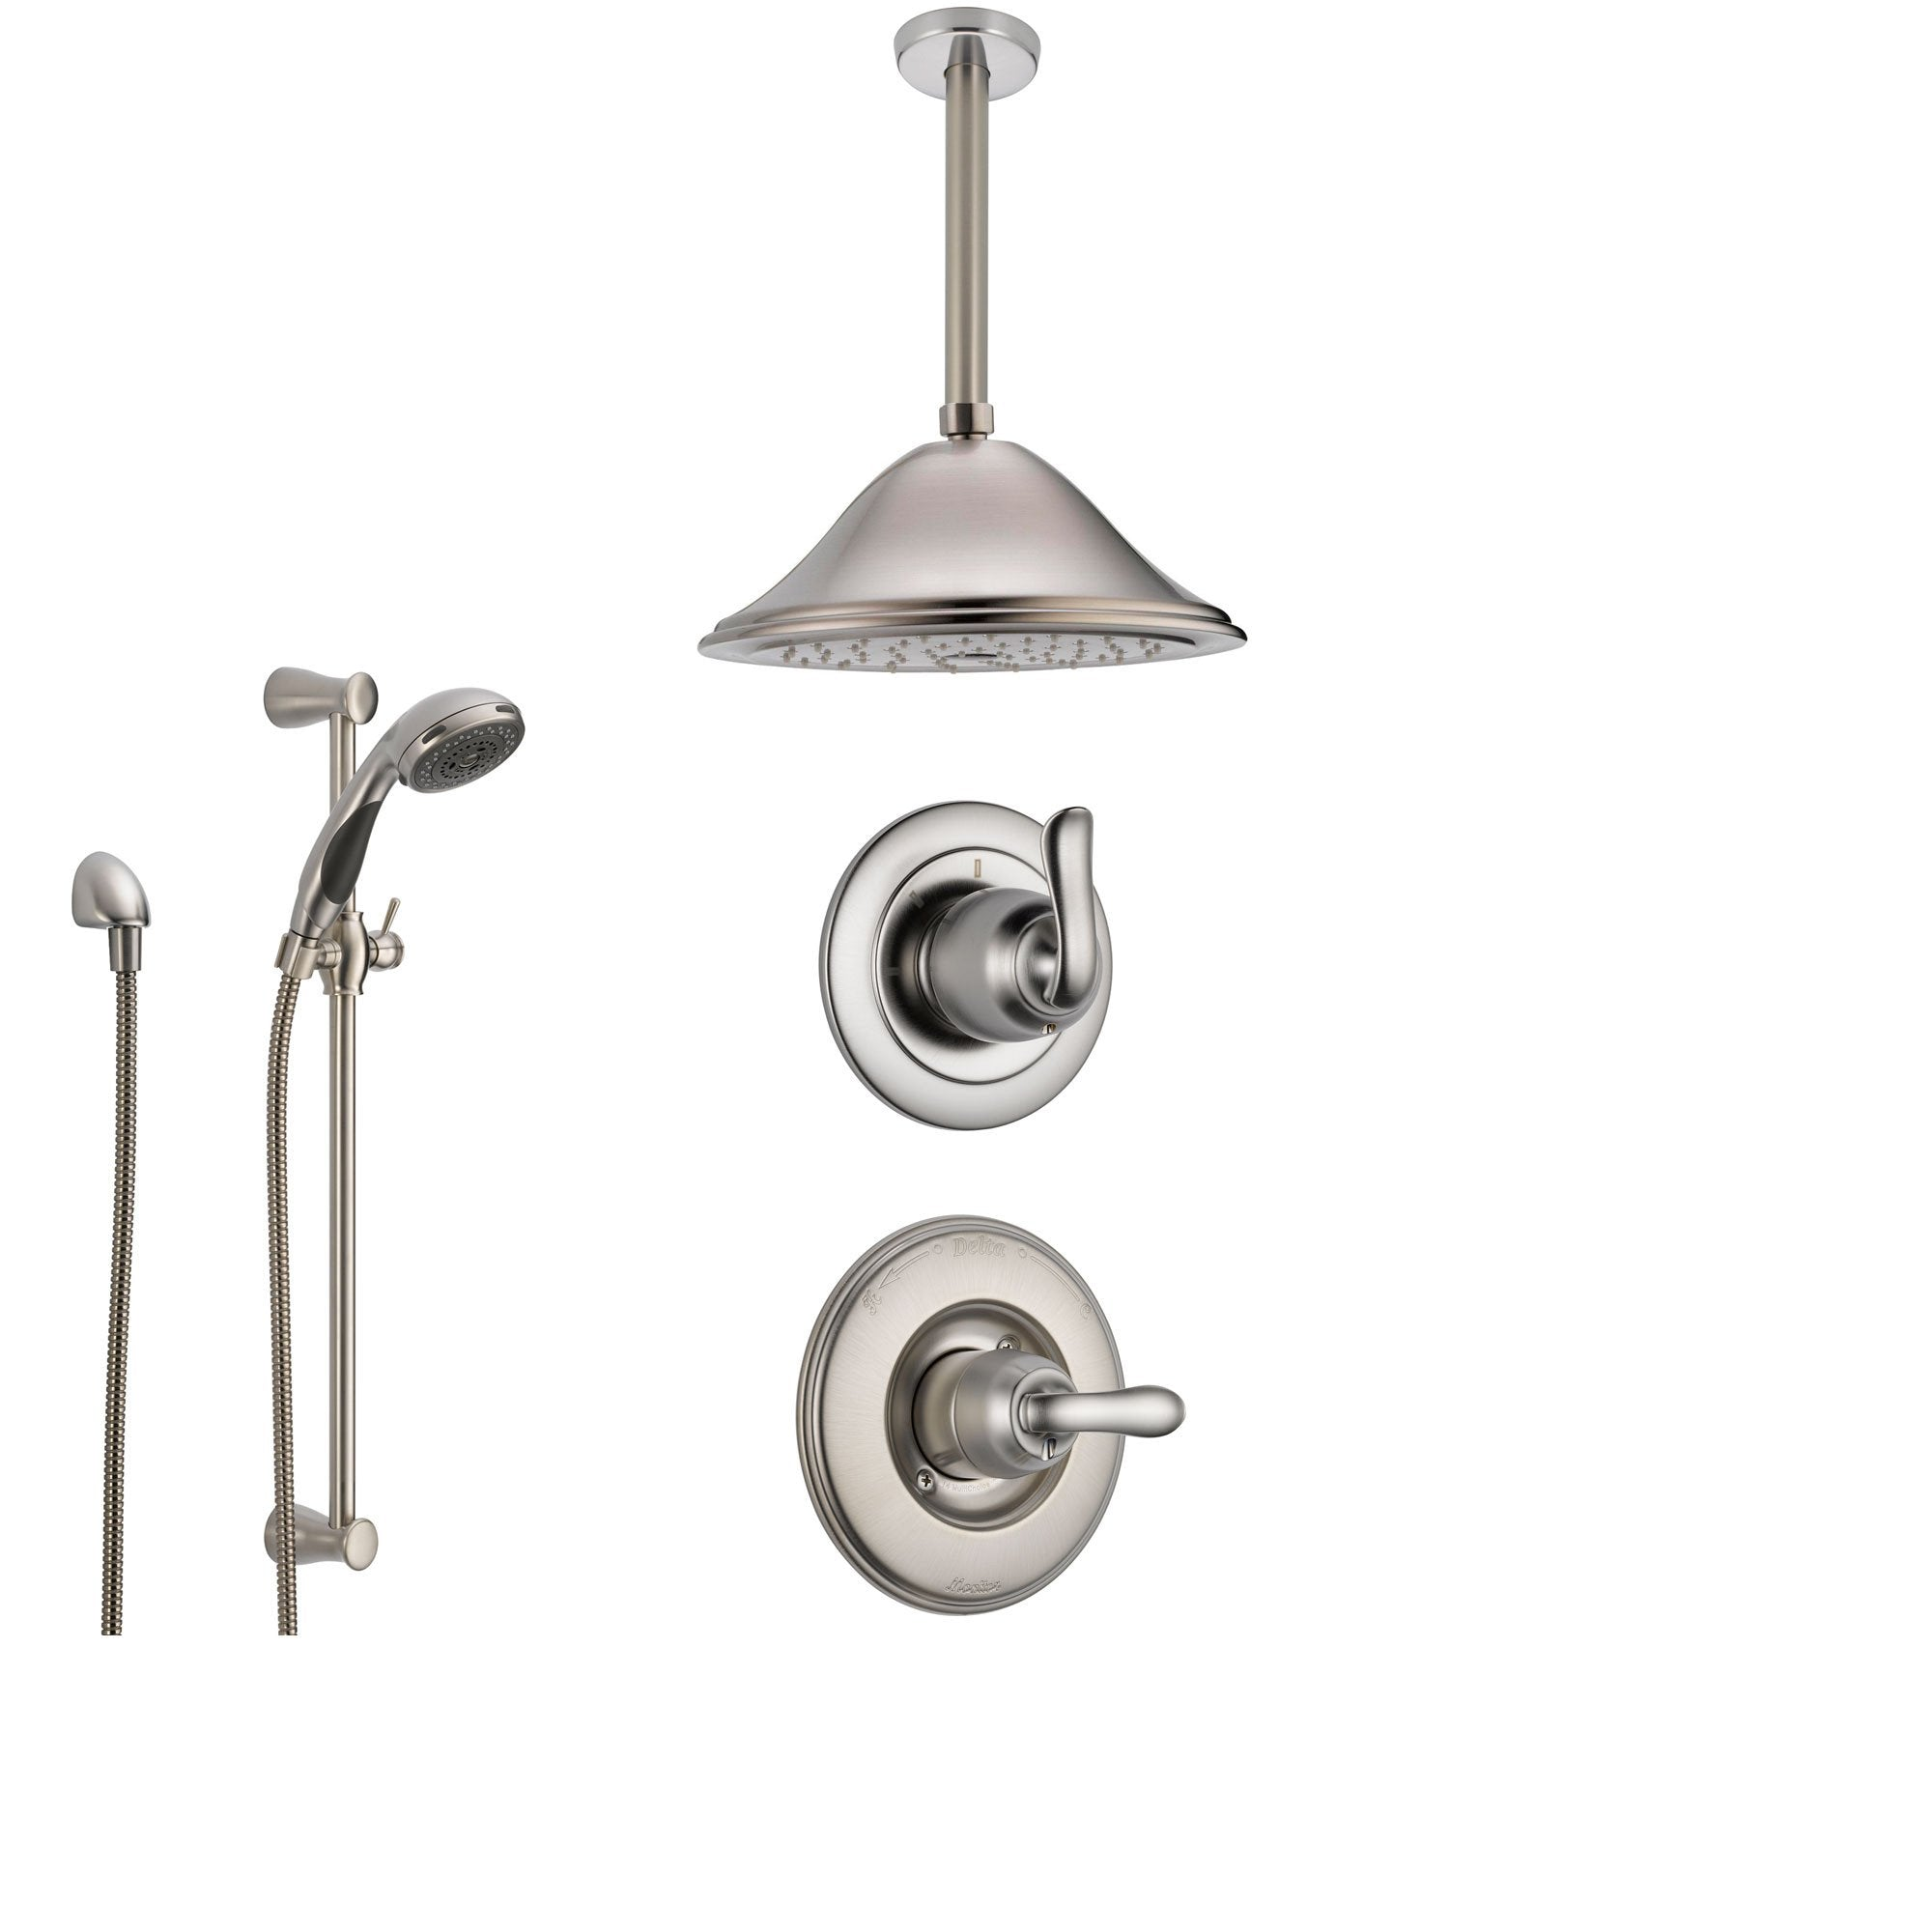 Delta Linden Stainless Steel Shower System with Normal Shower Handle, 3-setting Diverter, Large Ceiling Mount Rain Shower Head, and Handheld Shower SS149482SS